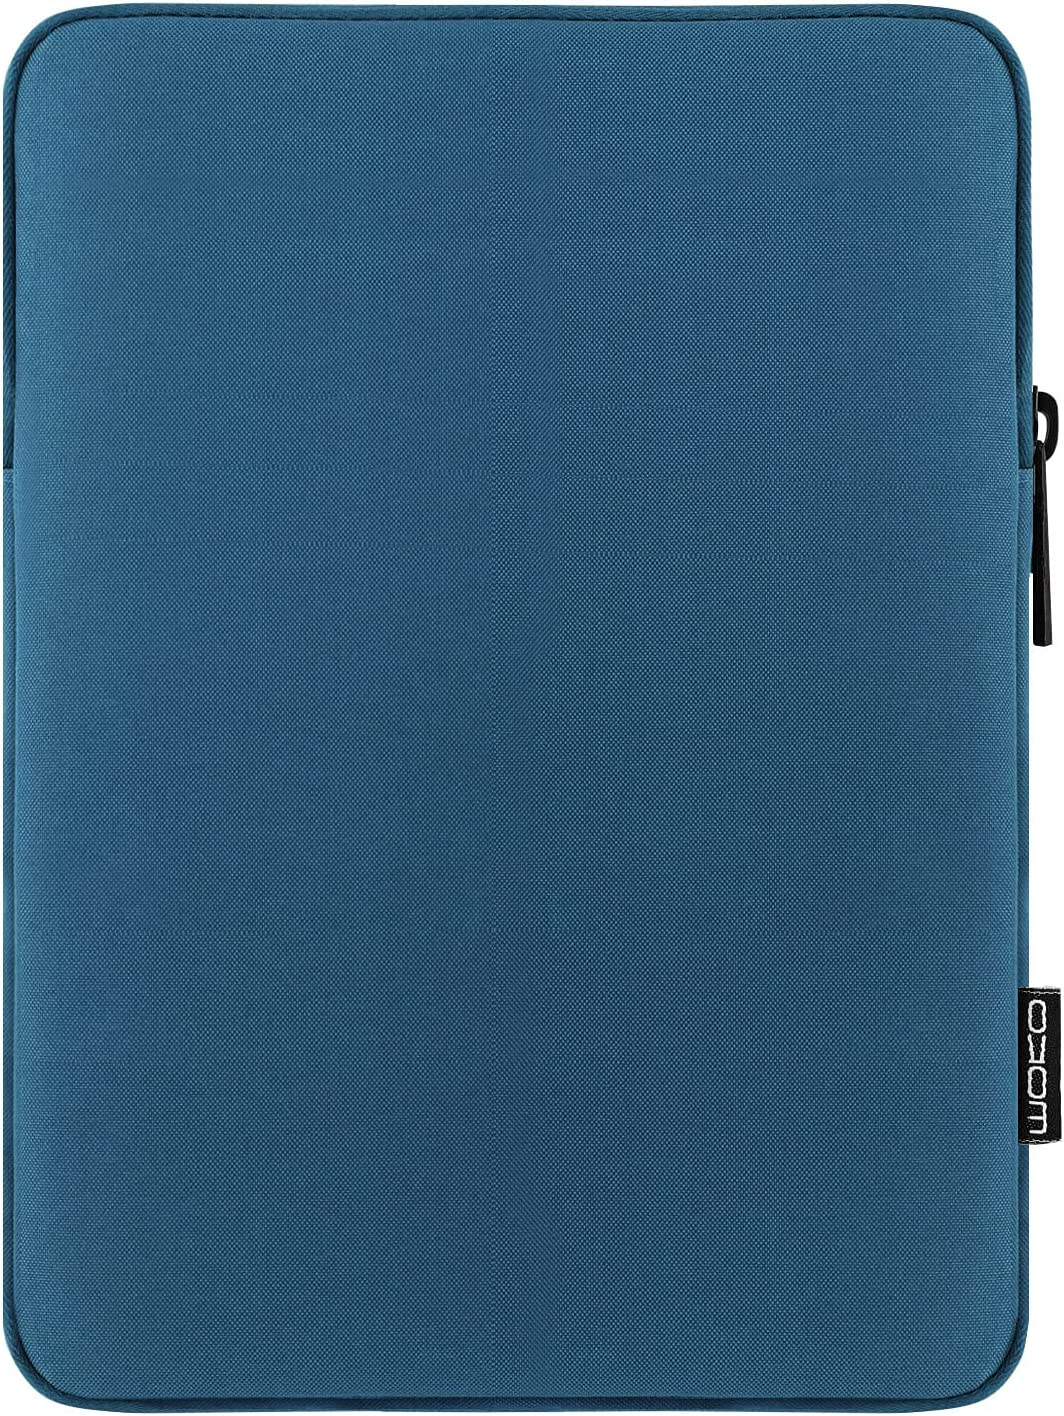 MoKo 7-8 Inch Tablet Sleeve Bag, Polyester Pouch Cover Case Fits iPad Mini (5th Gen) 7.9